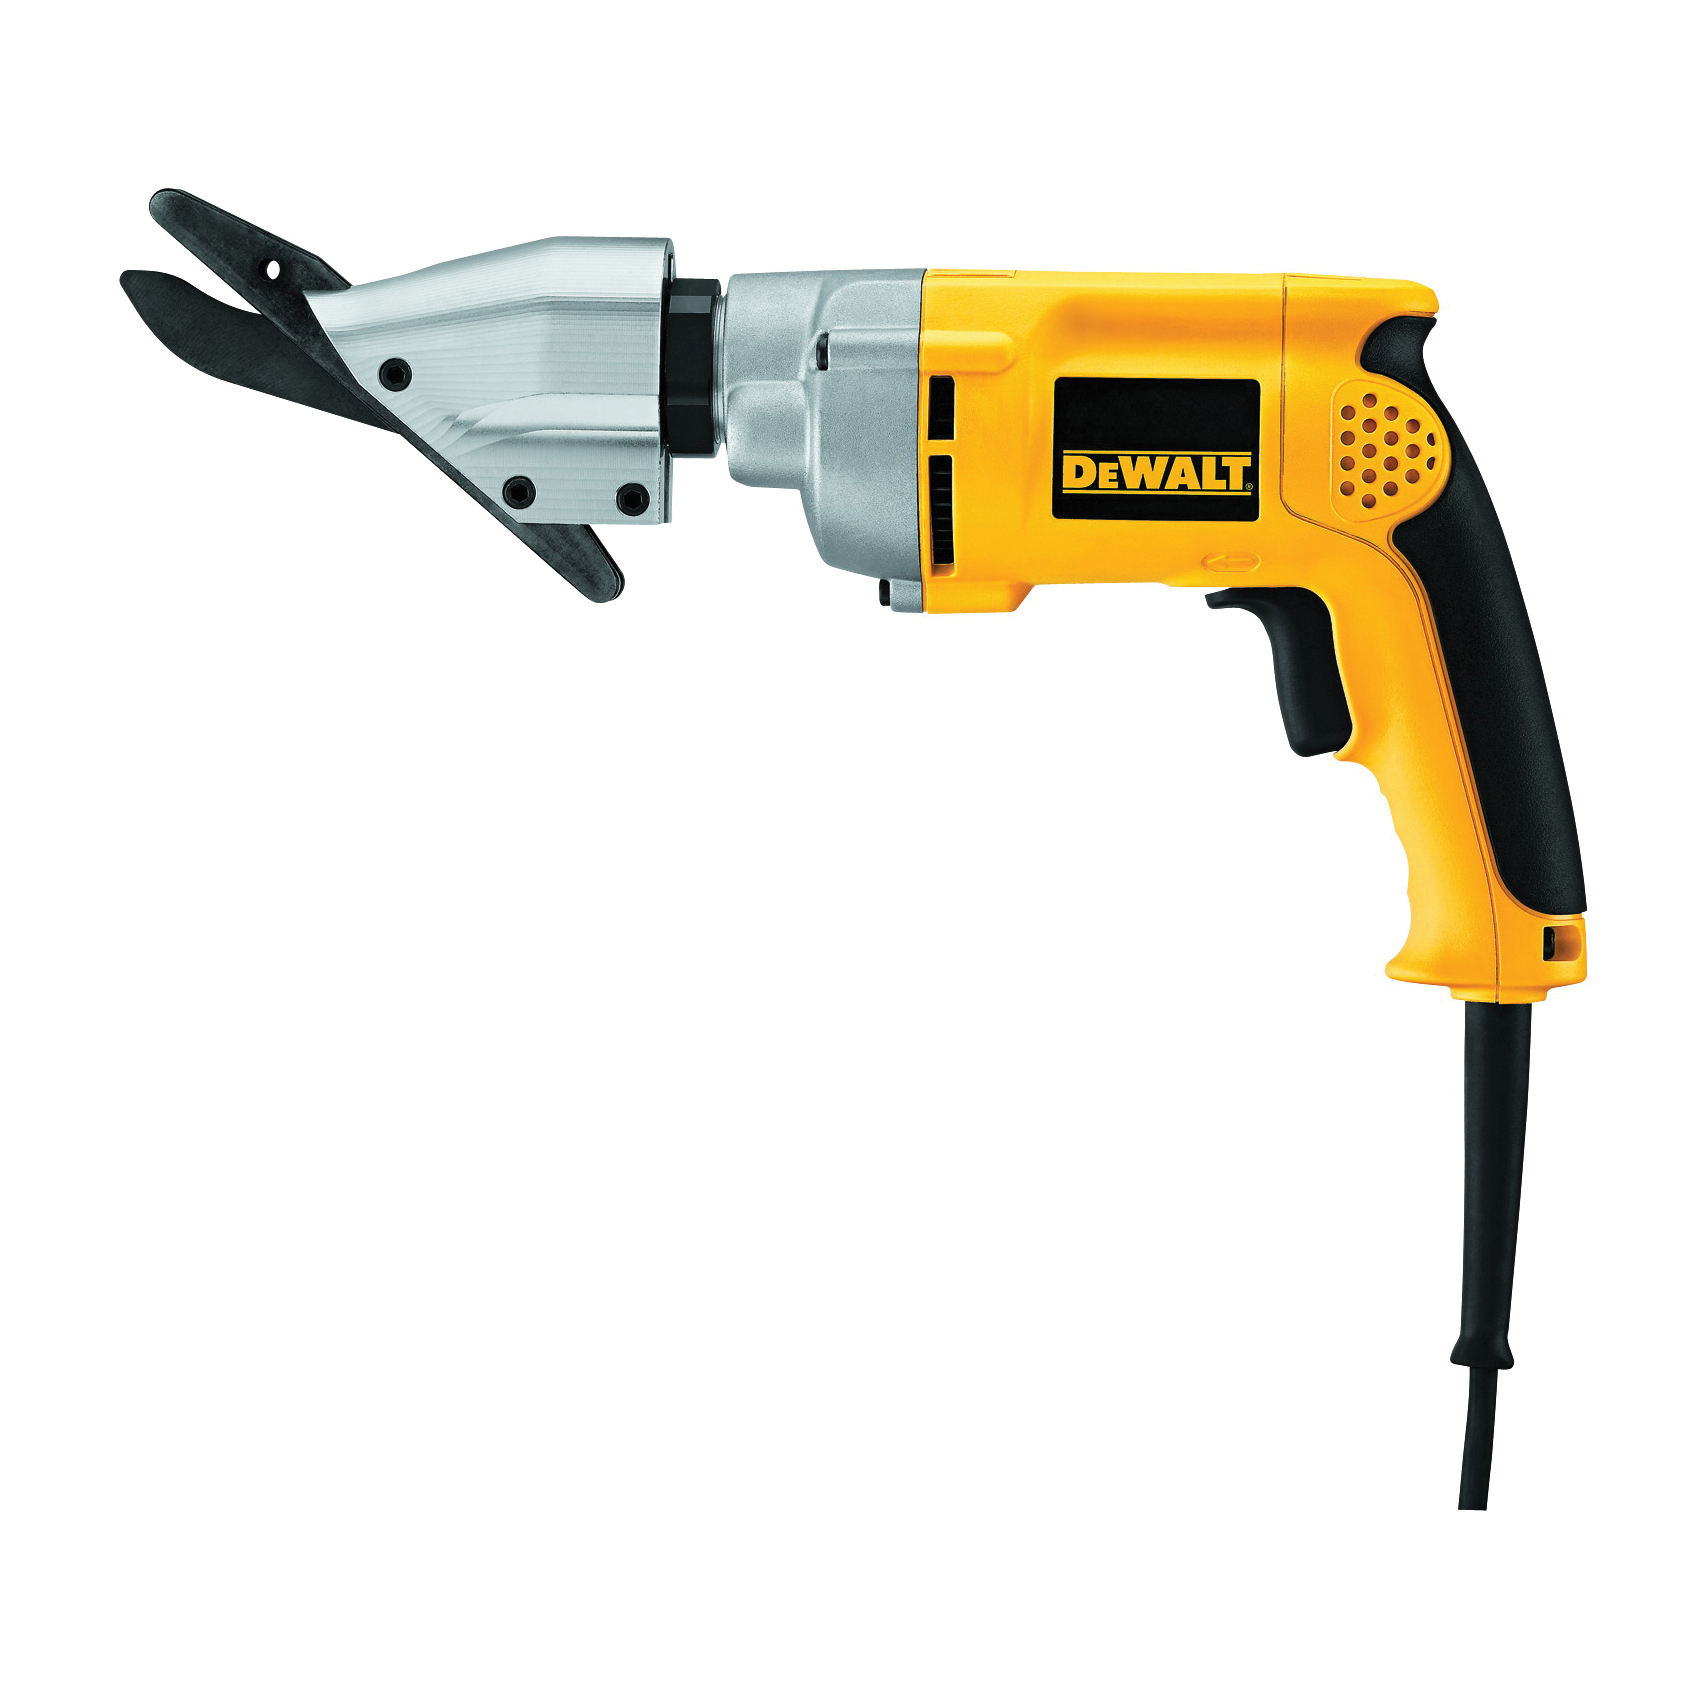 Picture of DeWALT D28605 Siding Shear, 6.5 A, 800 W, 5/16 in Fiber Cement Cutting Capacity, 0 to 2500 spm SPM